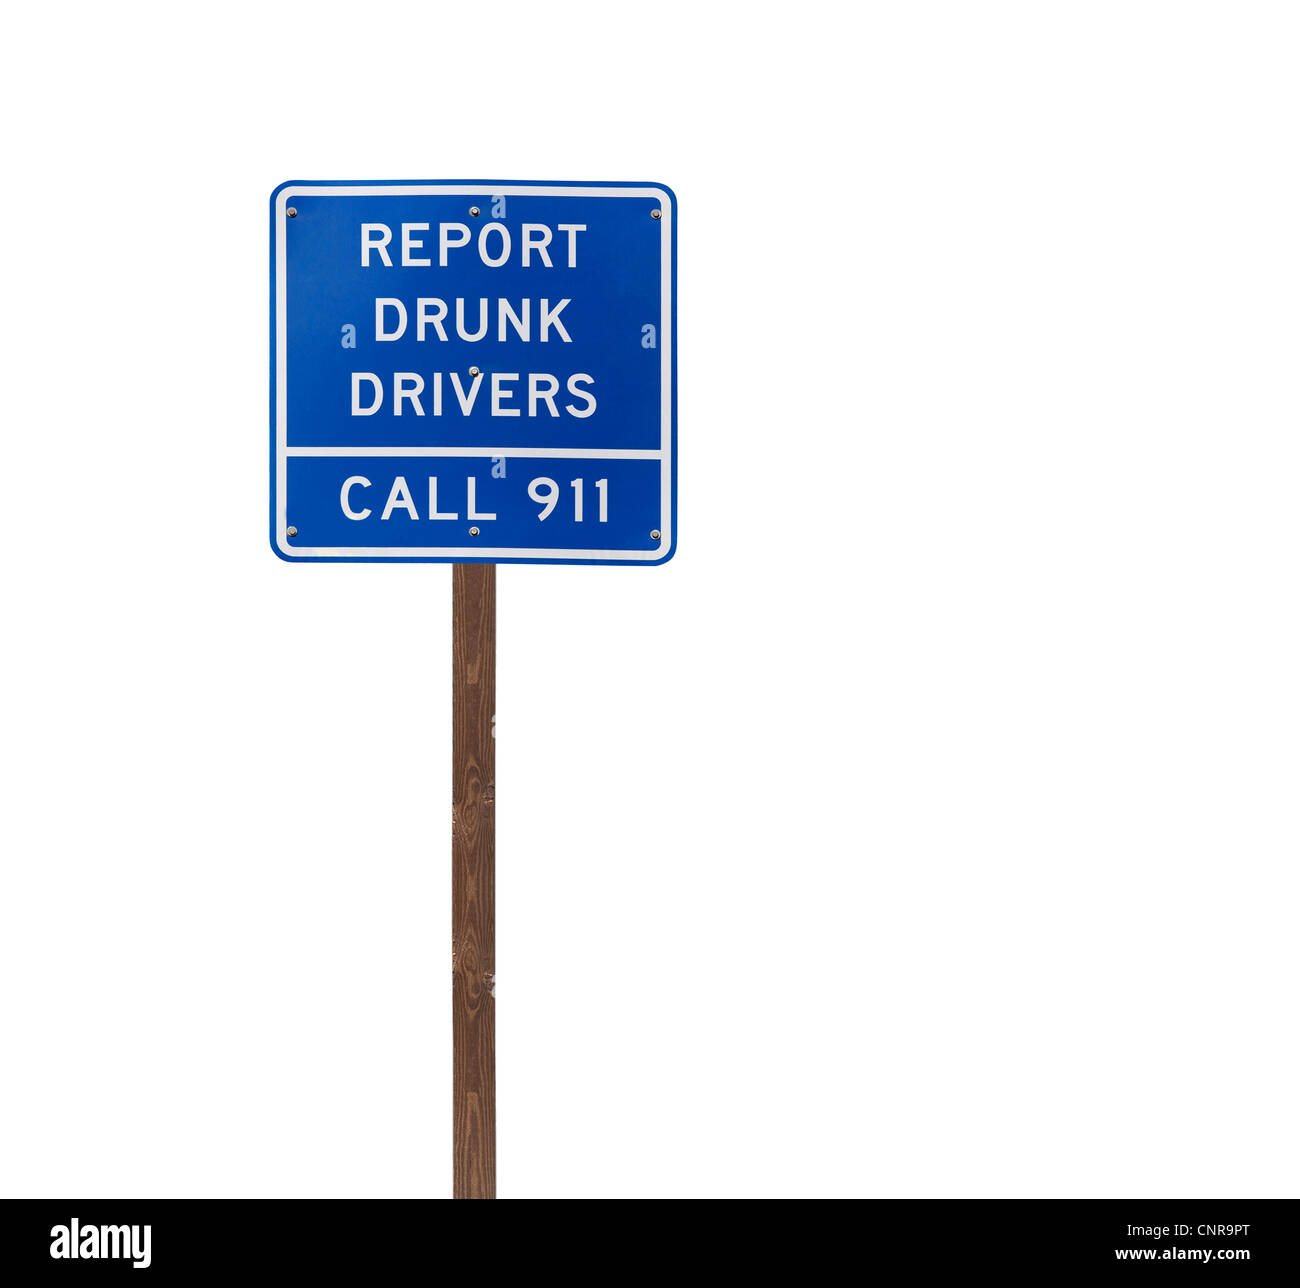 Drivers Cut Out Stock Images & Pictures - Alamy